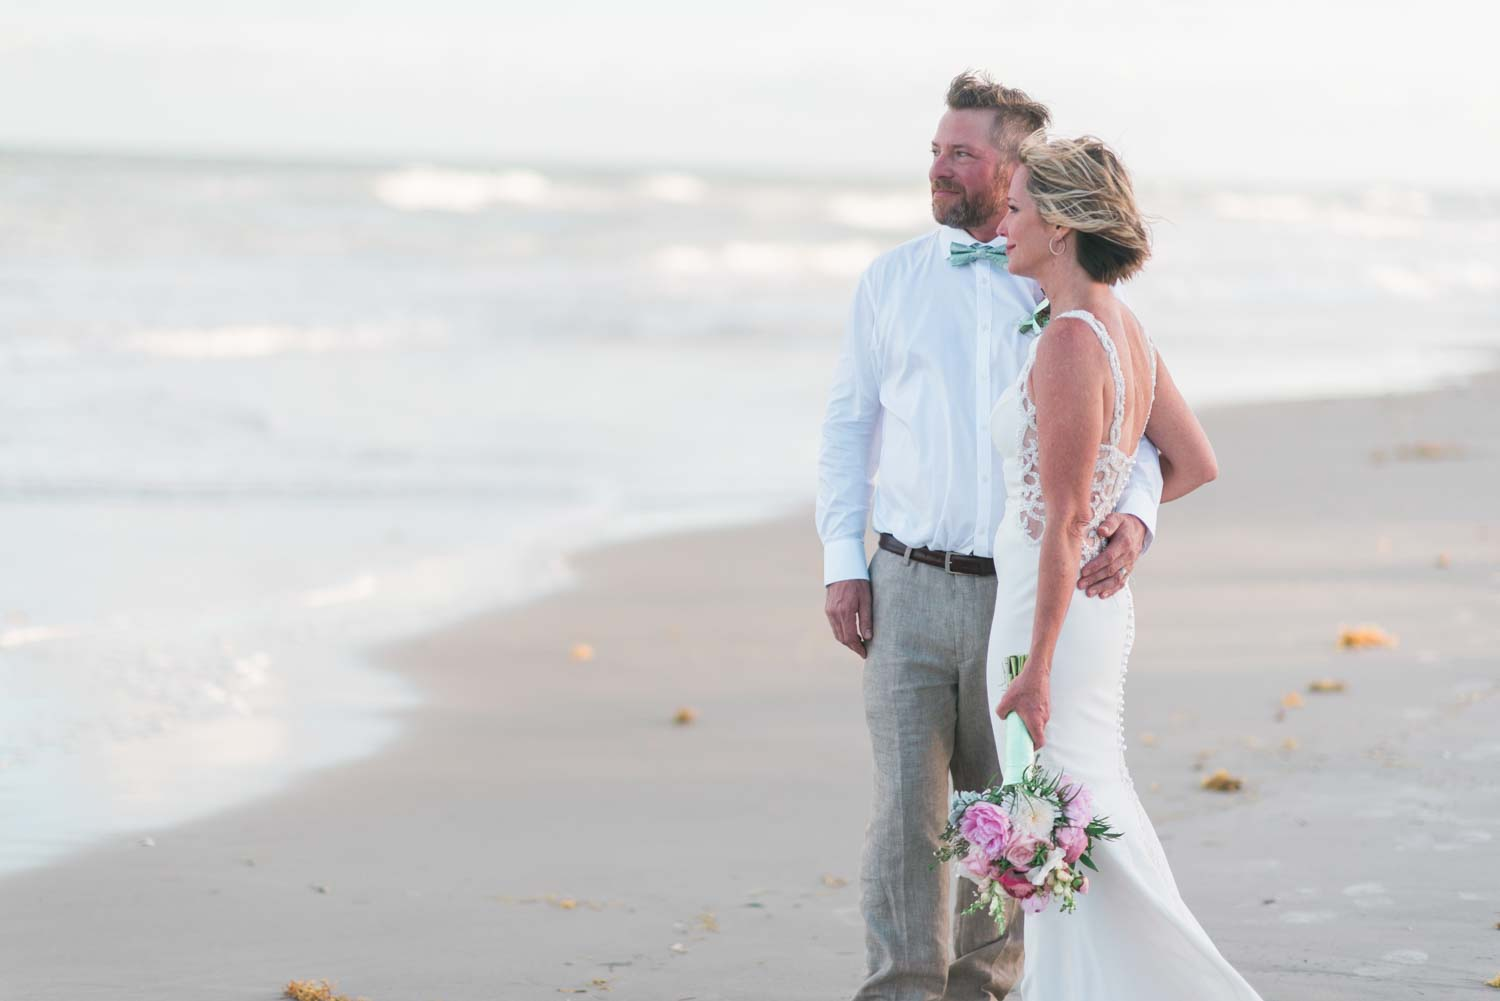 Cape Canaveral Beach Wedding Photographer - Rania Marie Photography-12.jpg